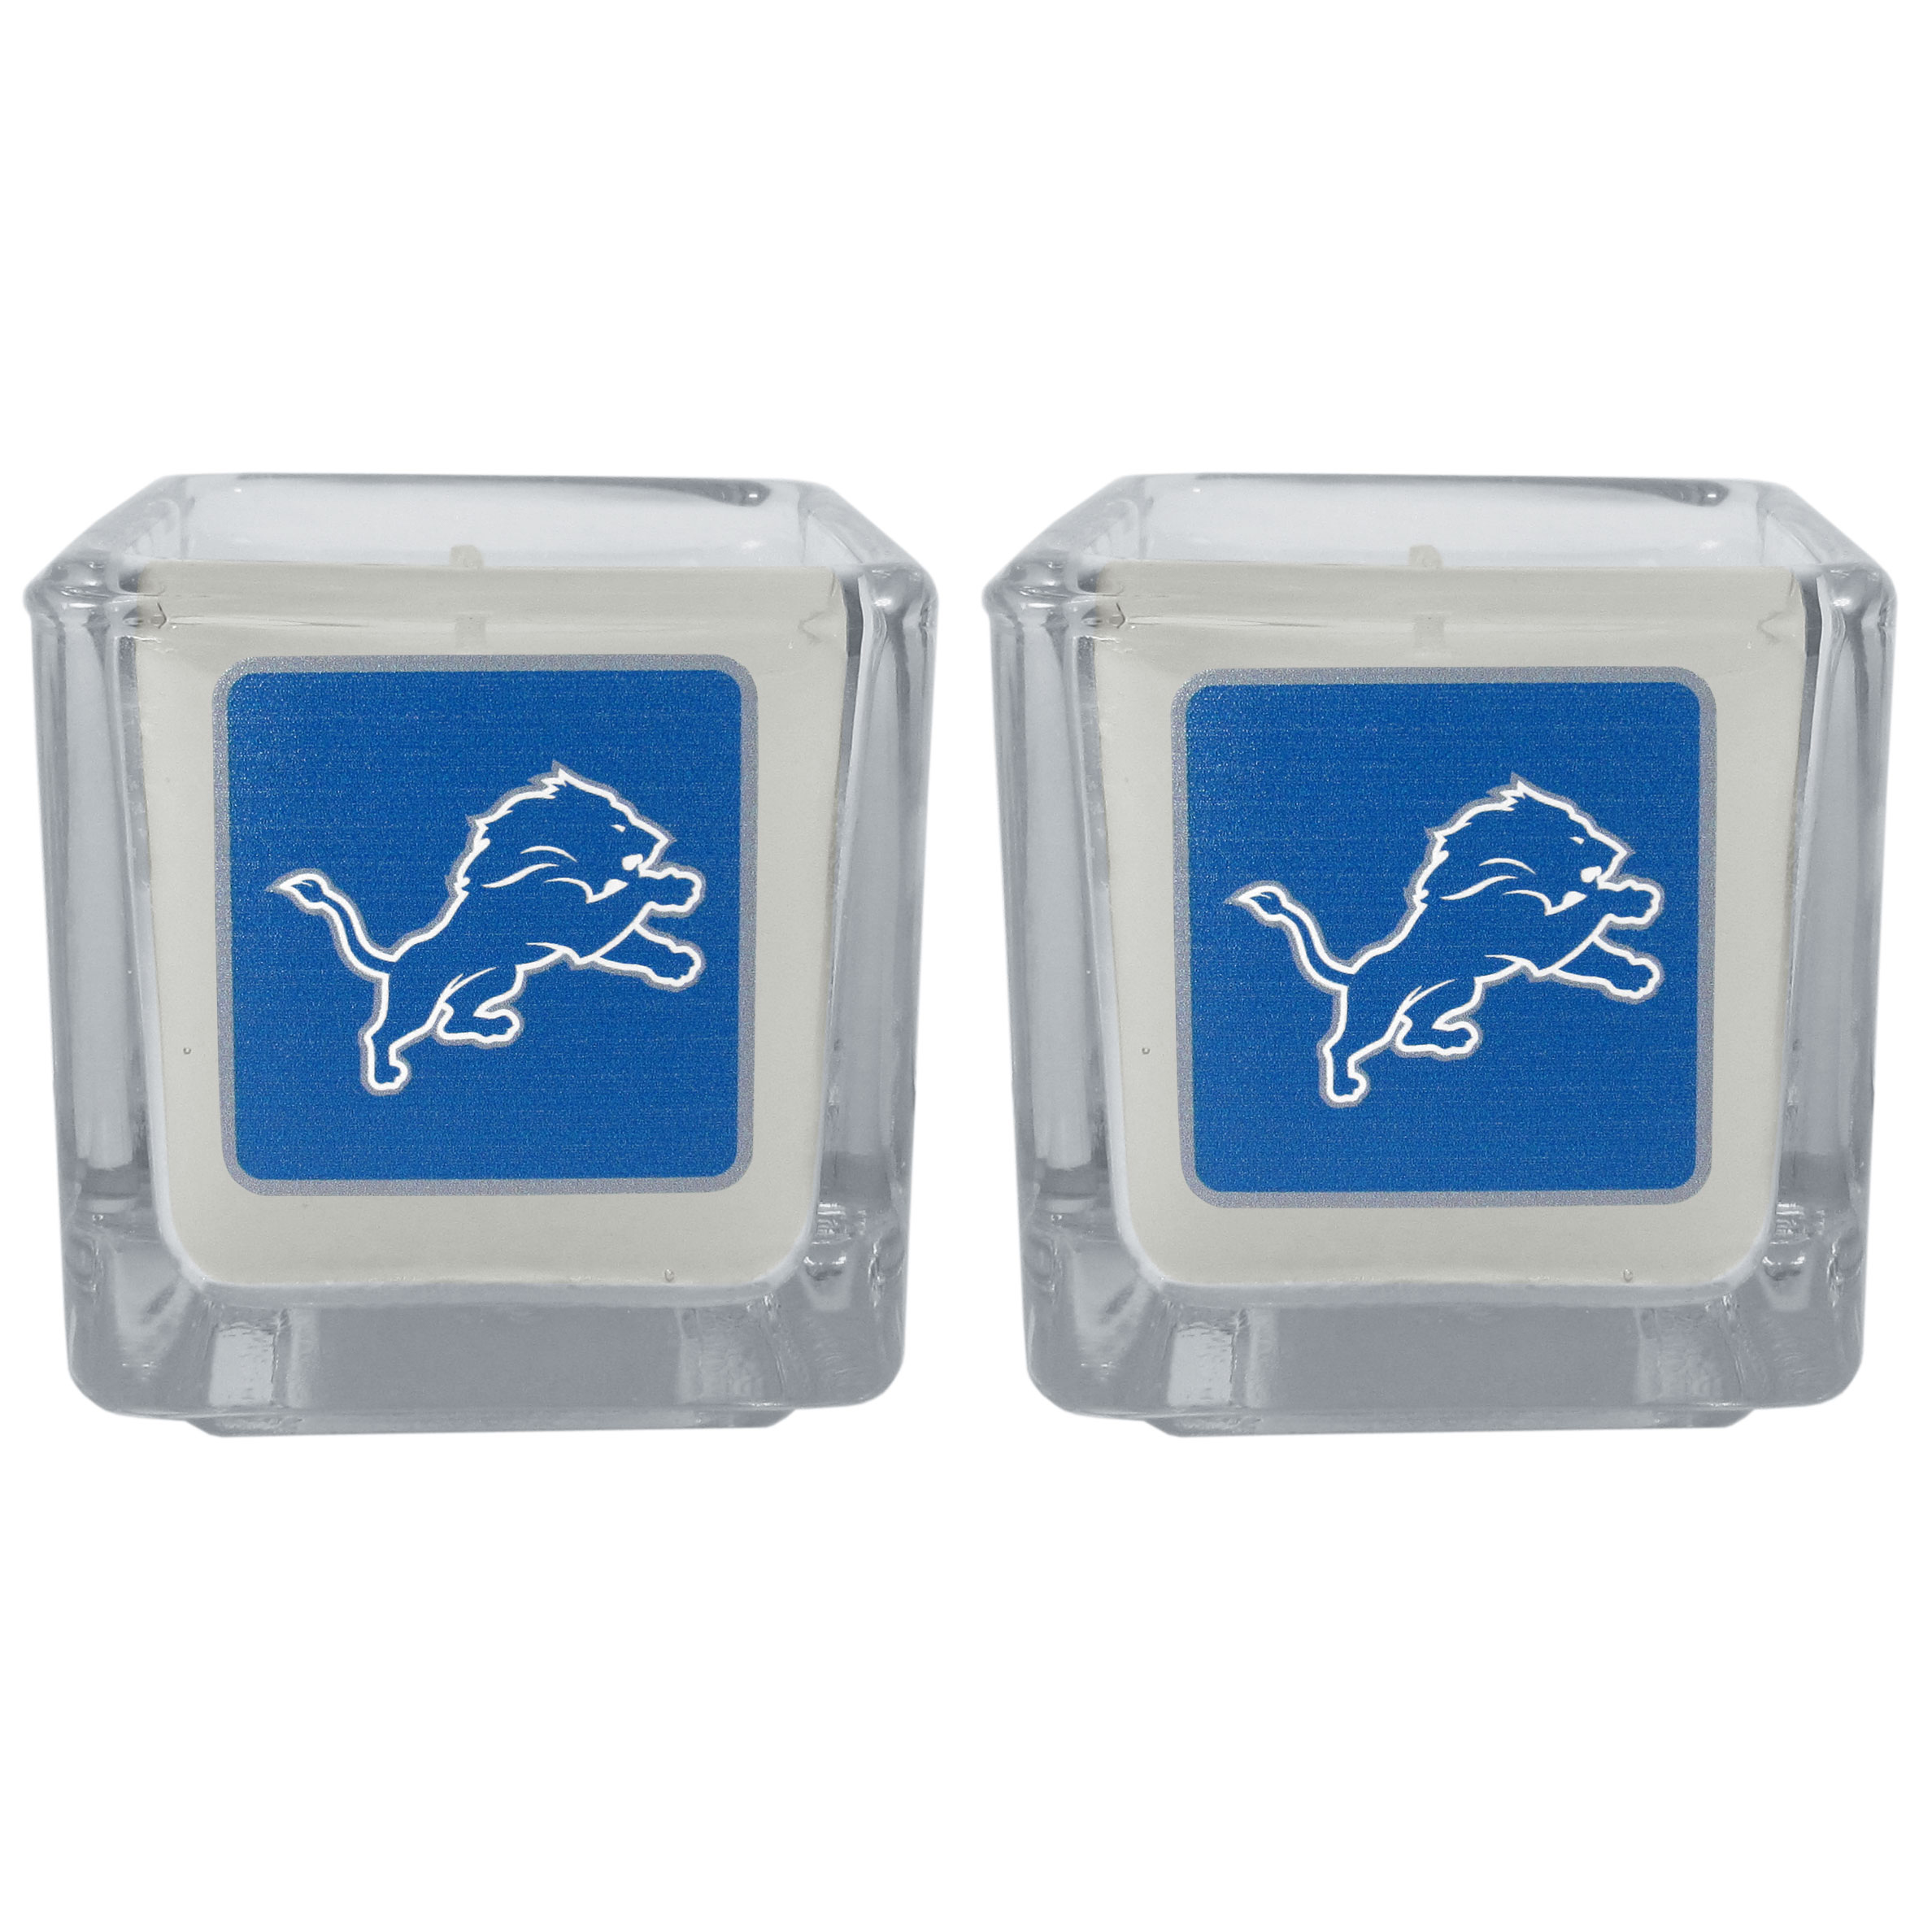 Detroit Lions Graphics Candle Set - Our candle set features 2 lightly vanilla scented candles with the Detroit Lions logo expertly printed on front. The candles are 2 inches tall in the votive style.